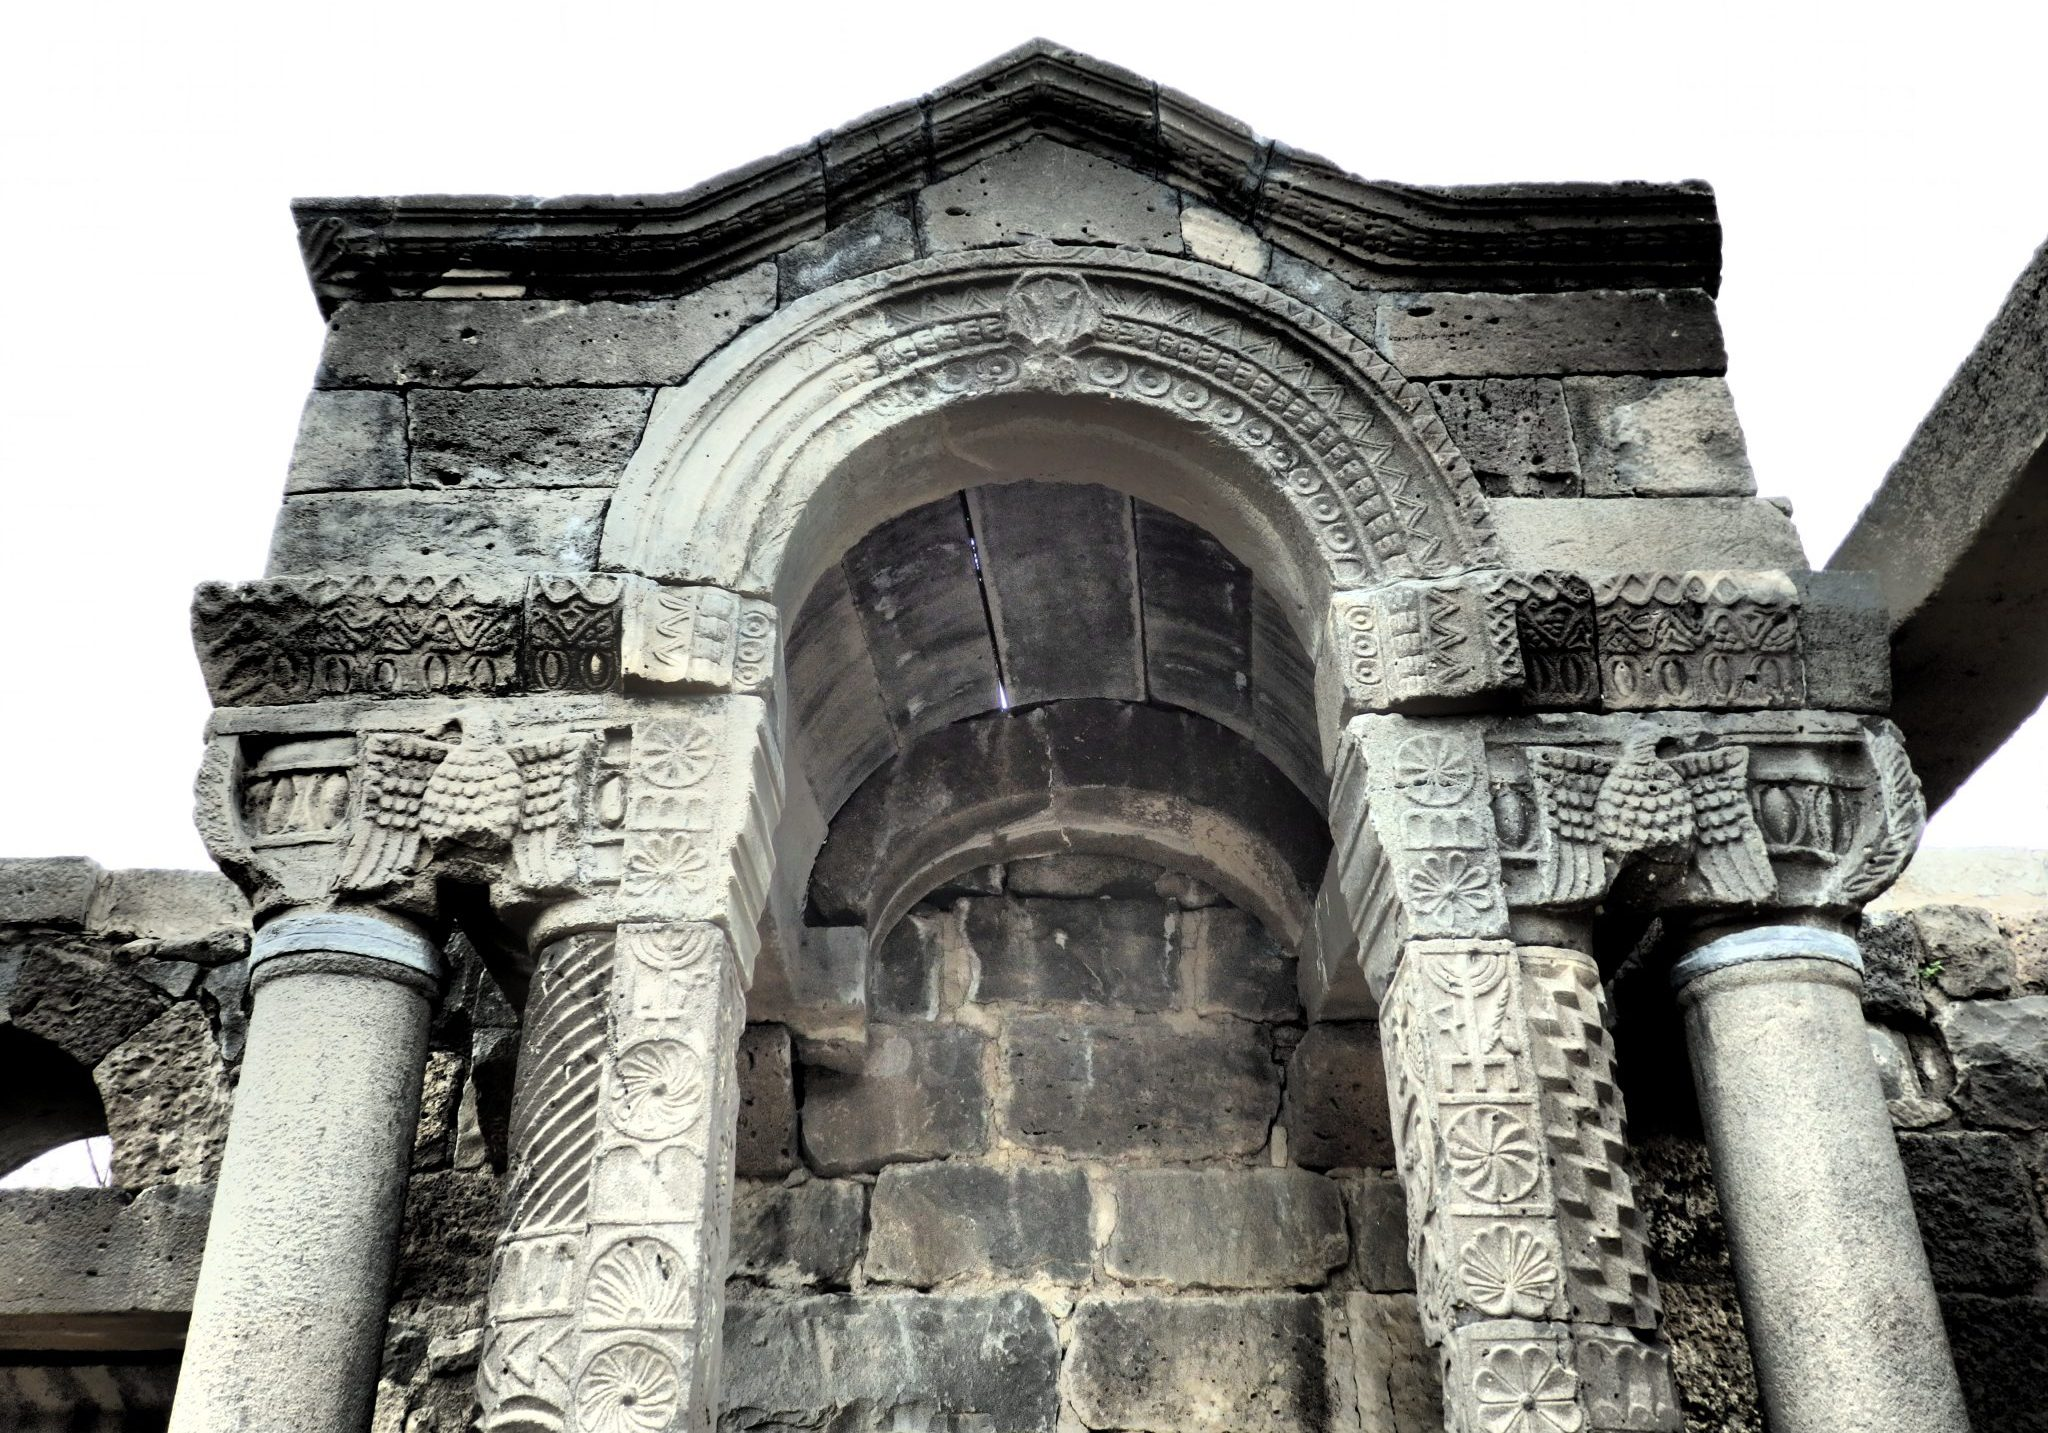 The Torah ark at Um el Kanatir shows detailed carvings.